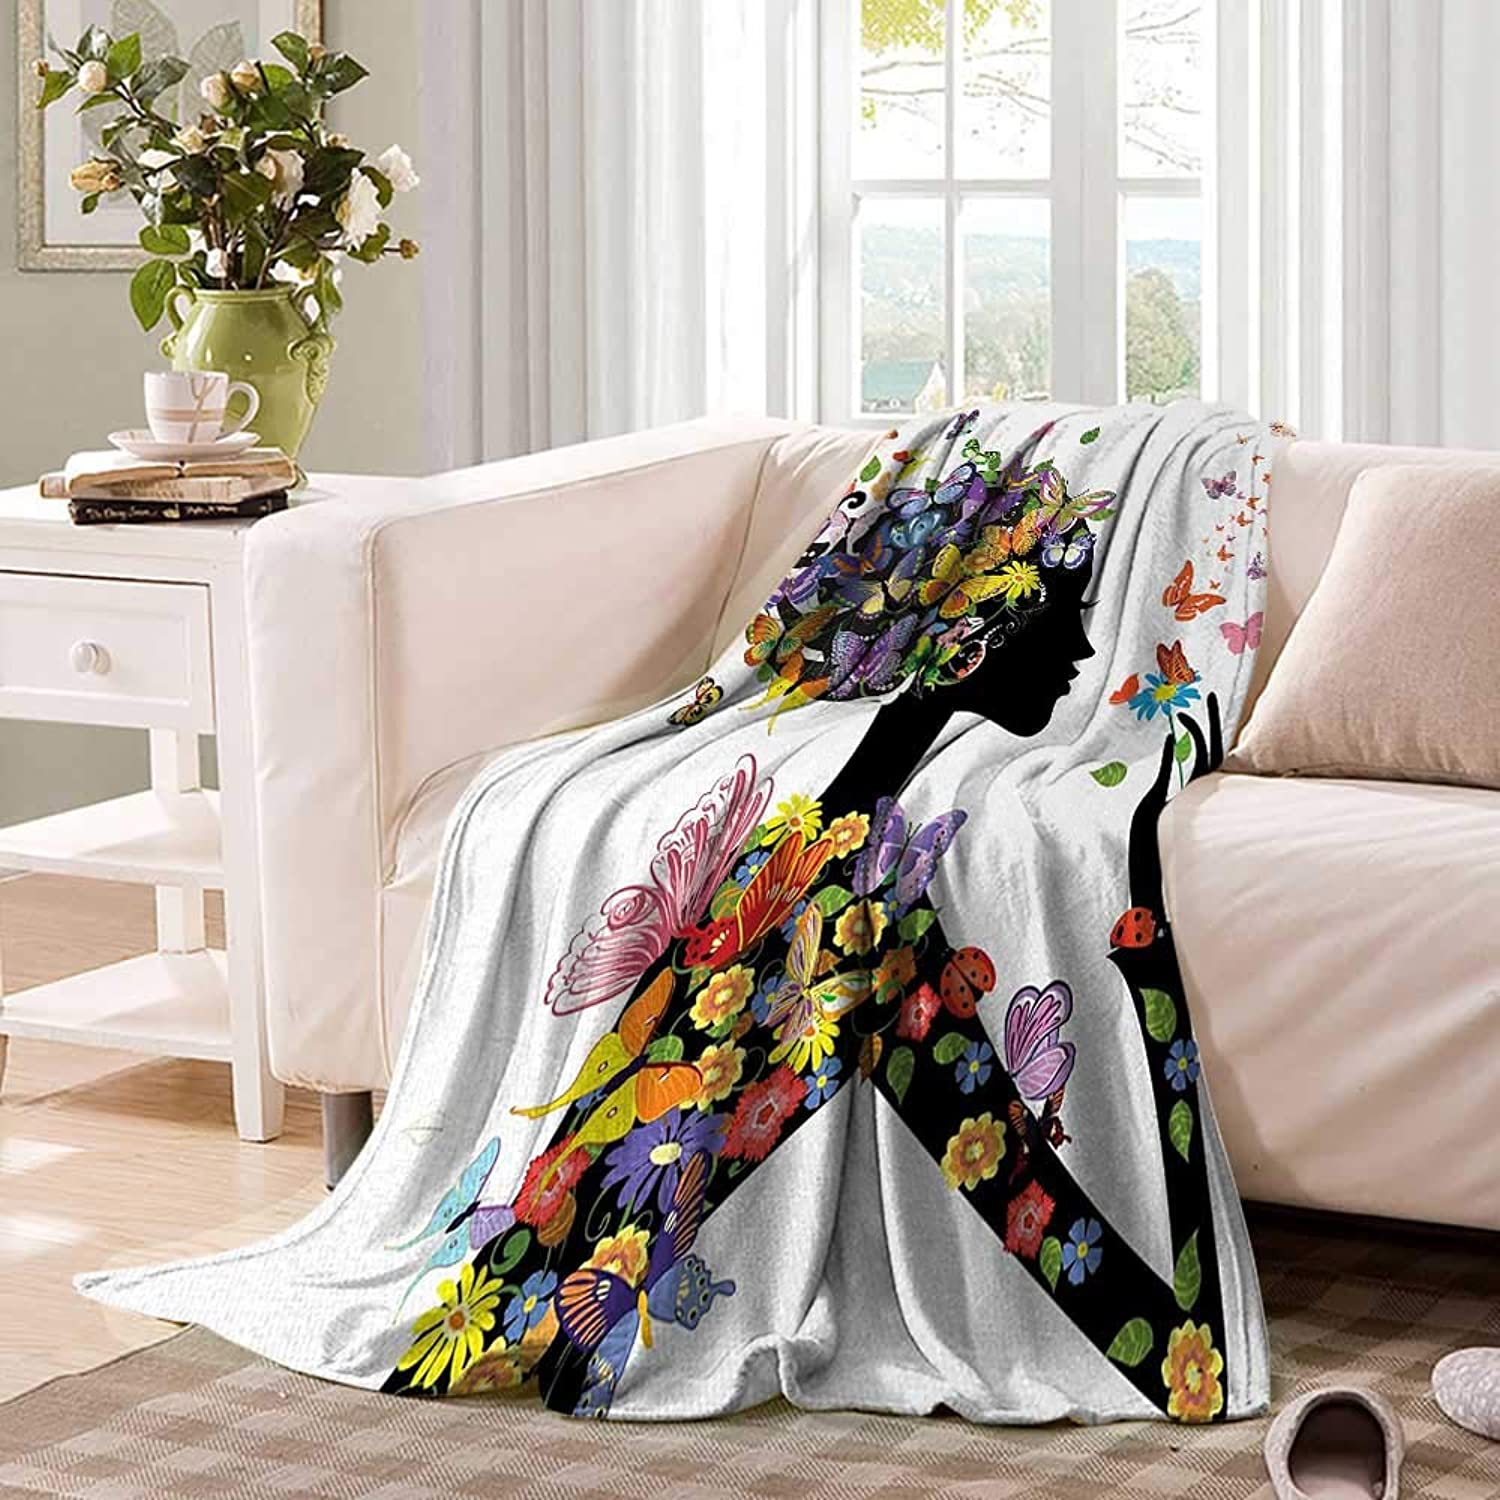 Butterfliesfluffy blanketGirl Fashion Flowers with Butterflies Ornamental Floral Foliage Nature Forestbed Blanket 60 x50  Multicolor